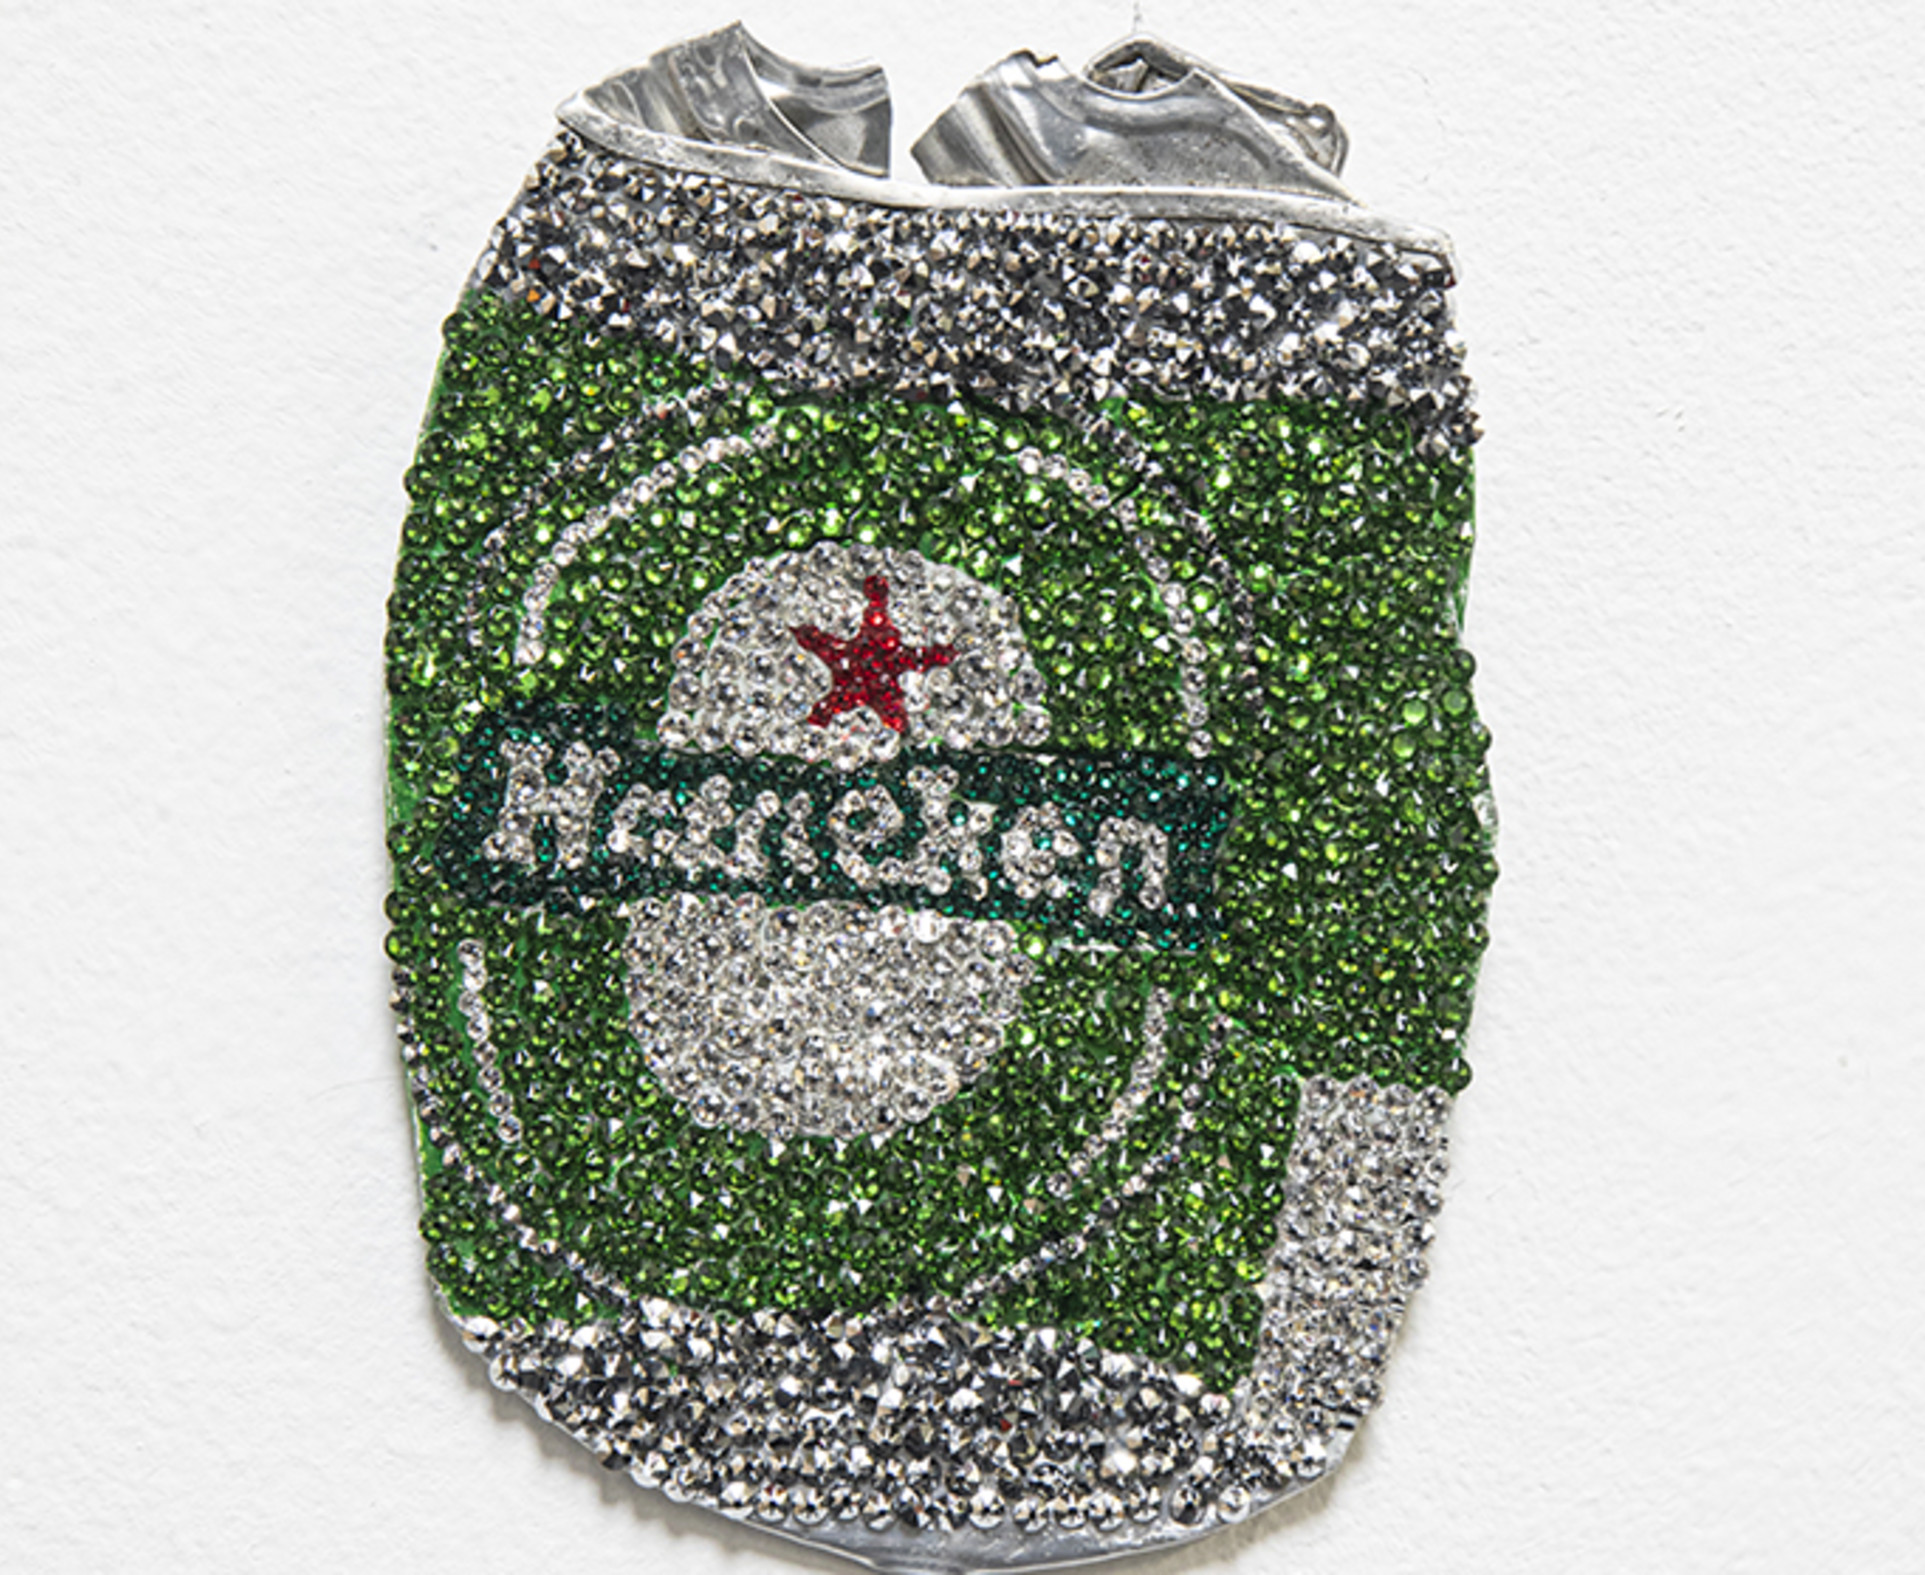 Sam Keller, Can (Heineken), 2019